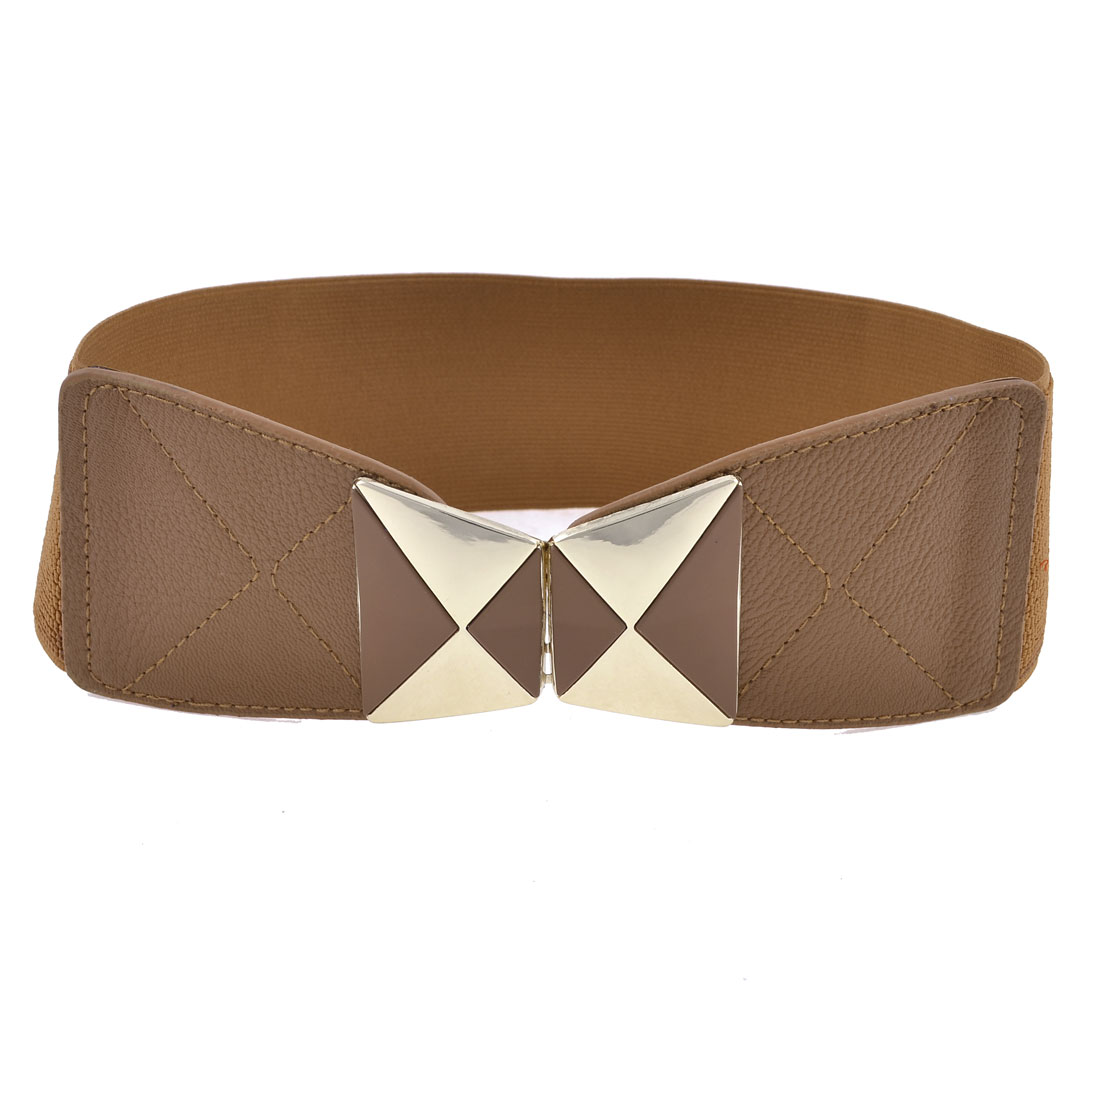 Lady Brown Gold Tone Dual Trapezoid Interlock Buckle Faux Leather Stretchy Waist Belt